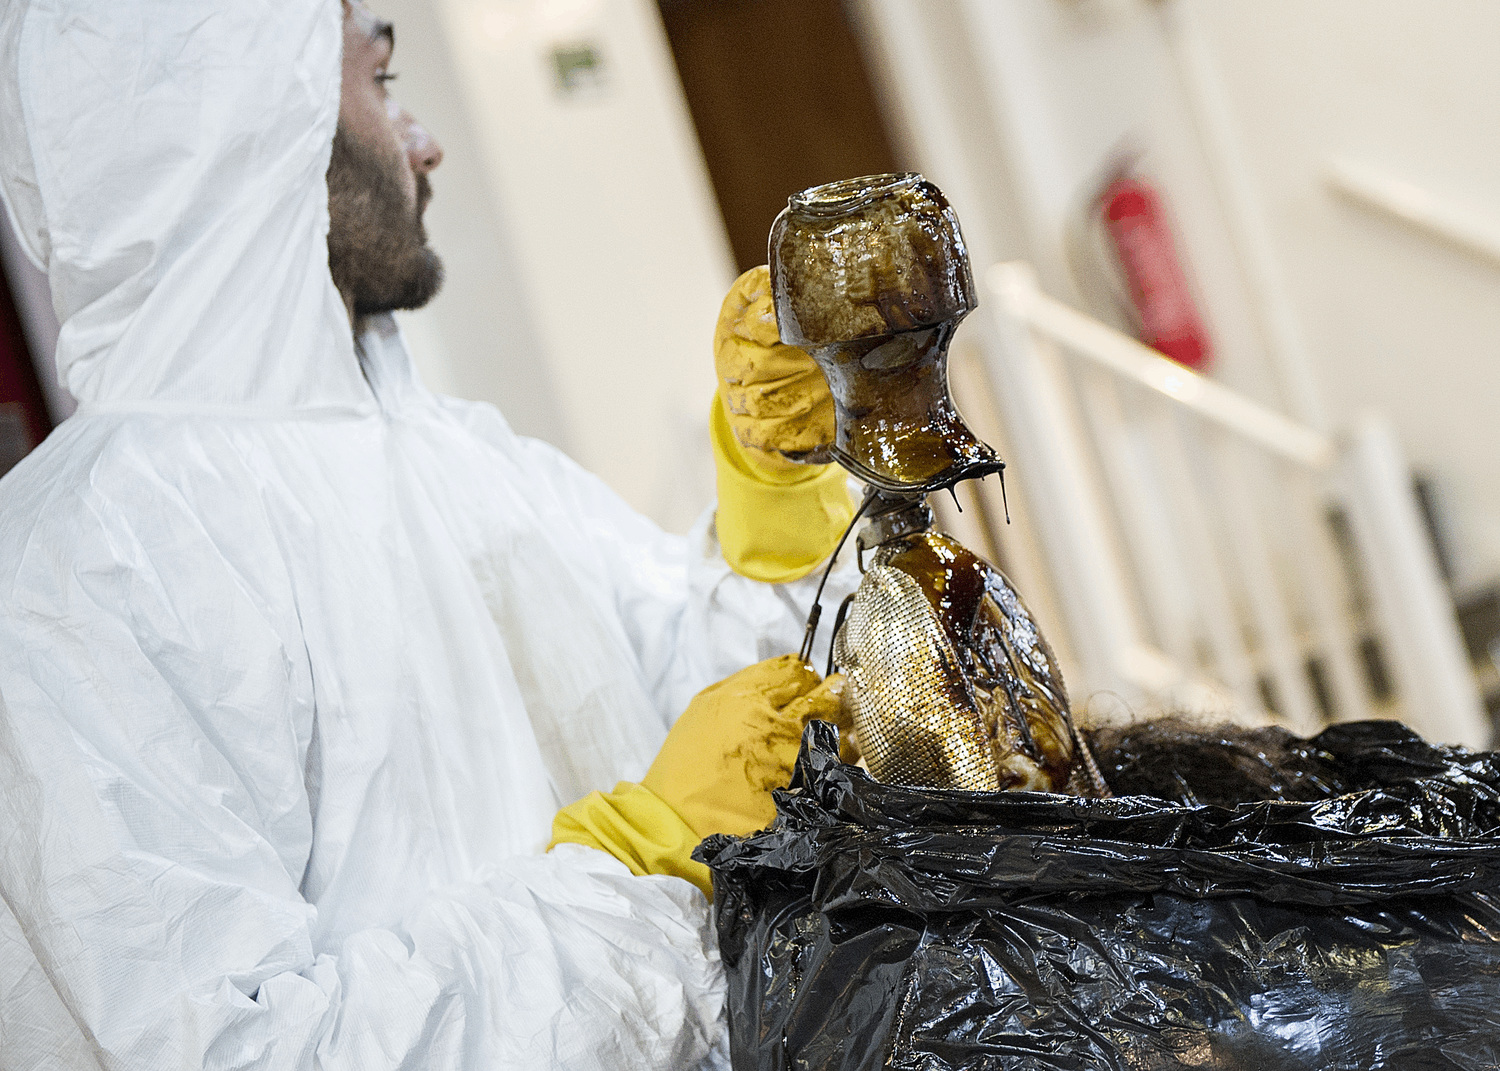 A man in a white hooded hygene suit and yellow gloves, lifts a mucky duck out of a bin bag.  The duck is made of a silver tea set